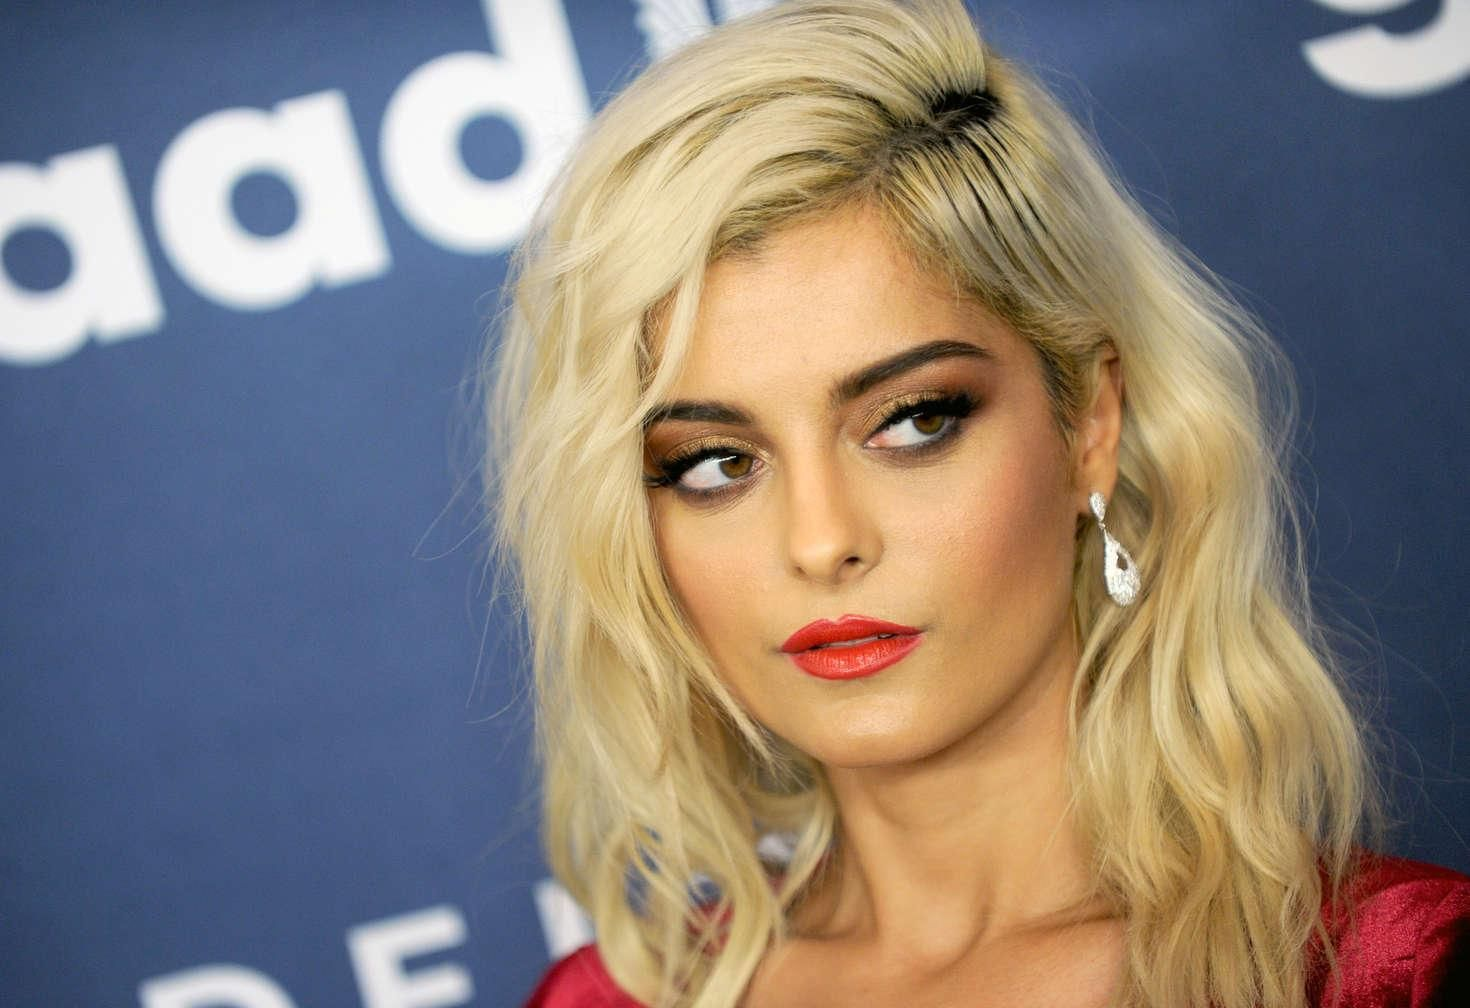 Bebe Rexha Wallpapers Wallpaper Cave Bebe Rexha Hair Hair Styles